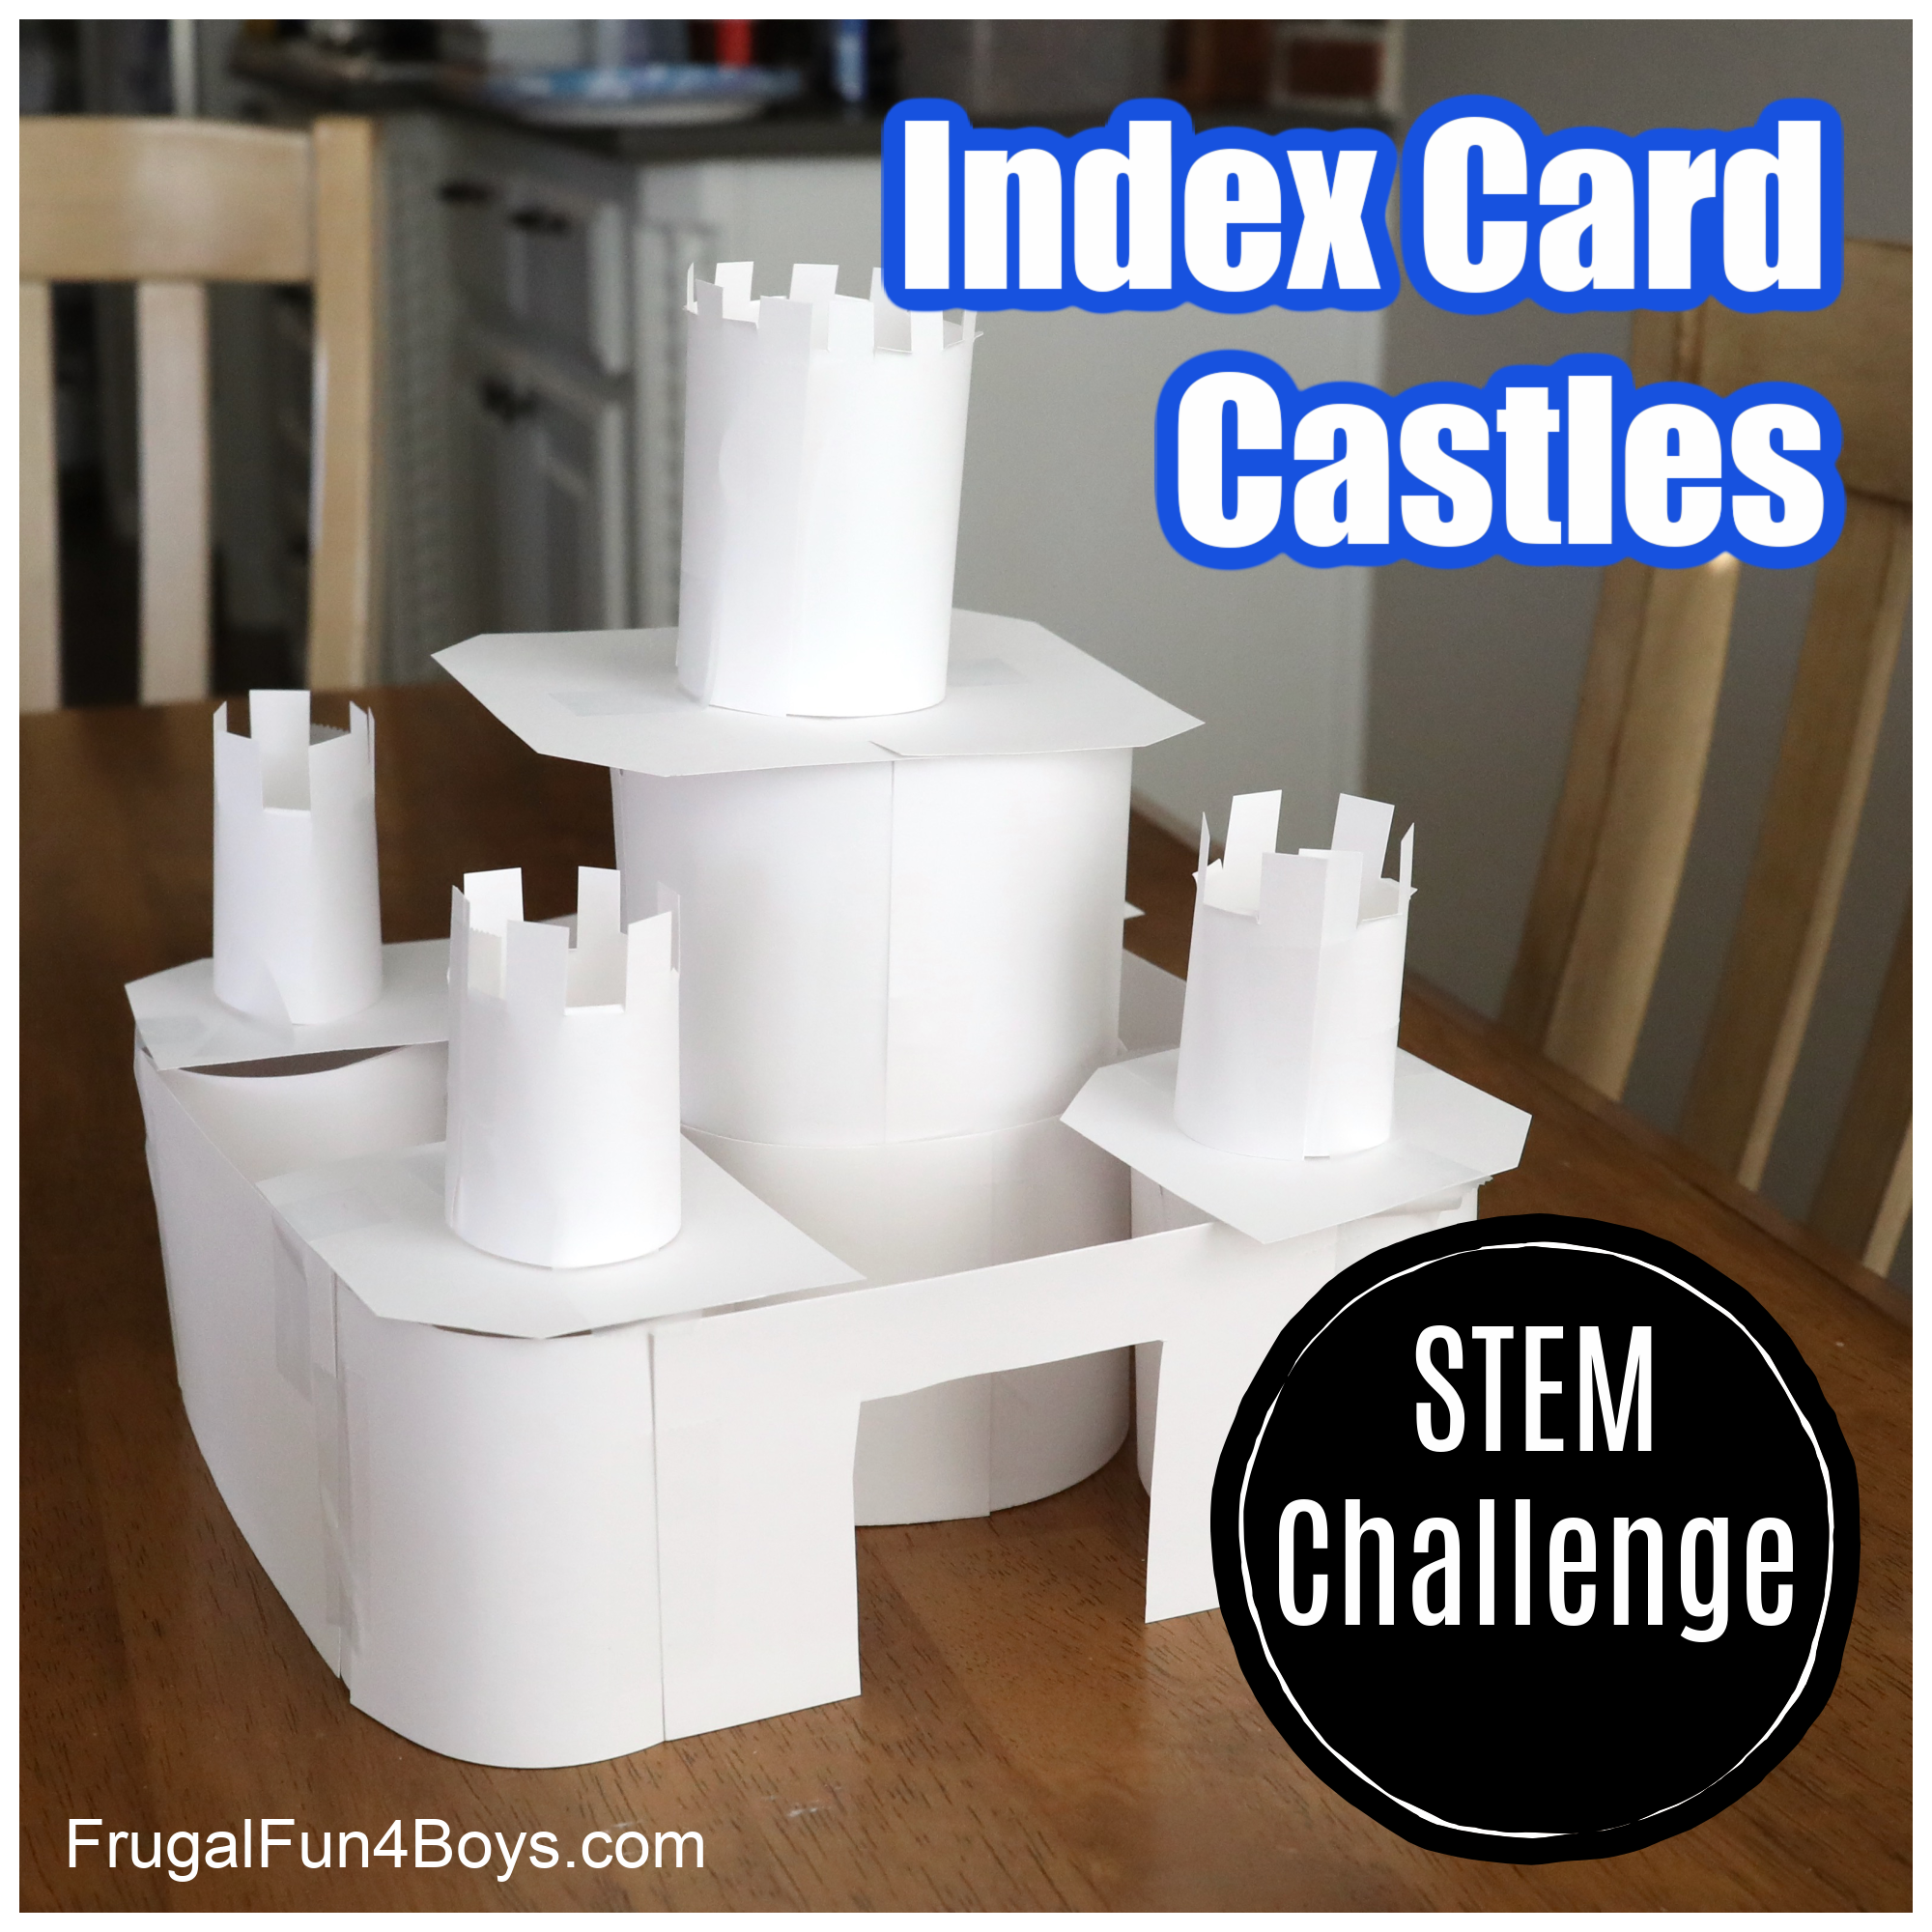 Index Card Castles STEM Challenge